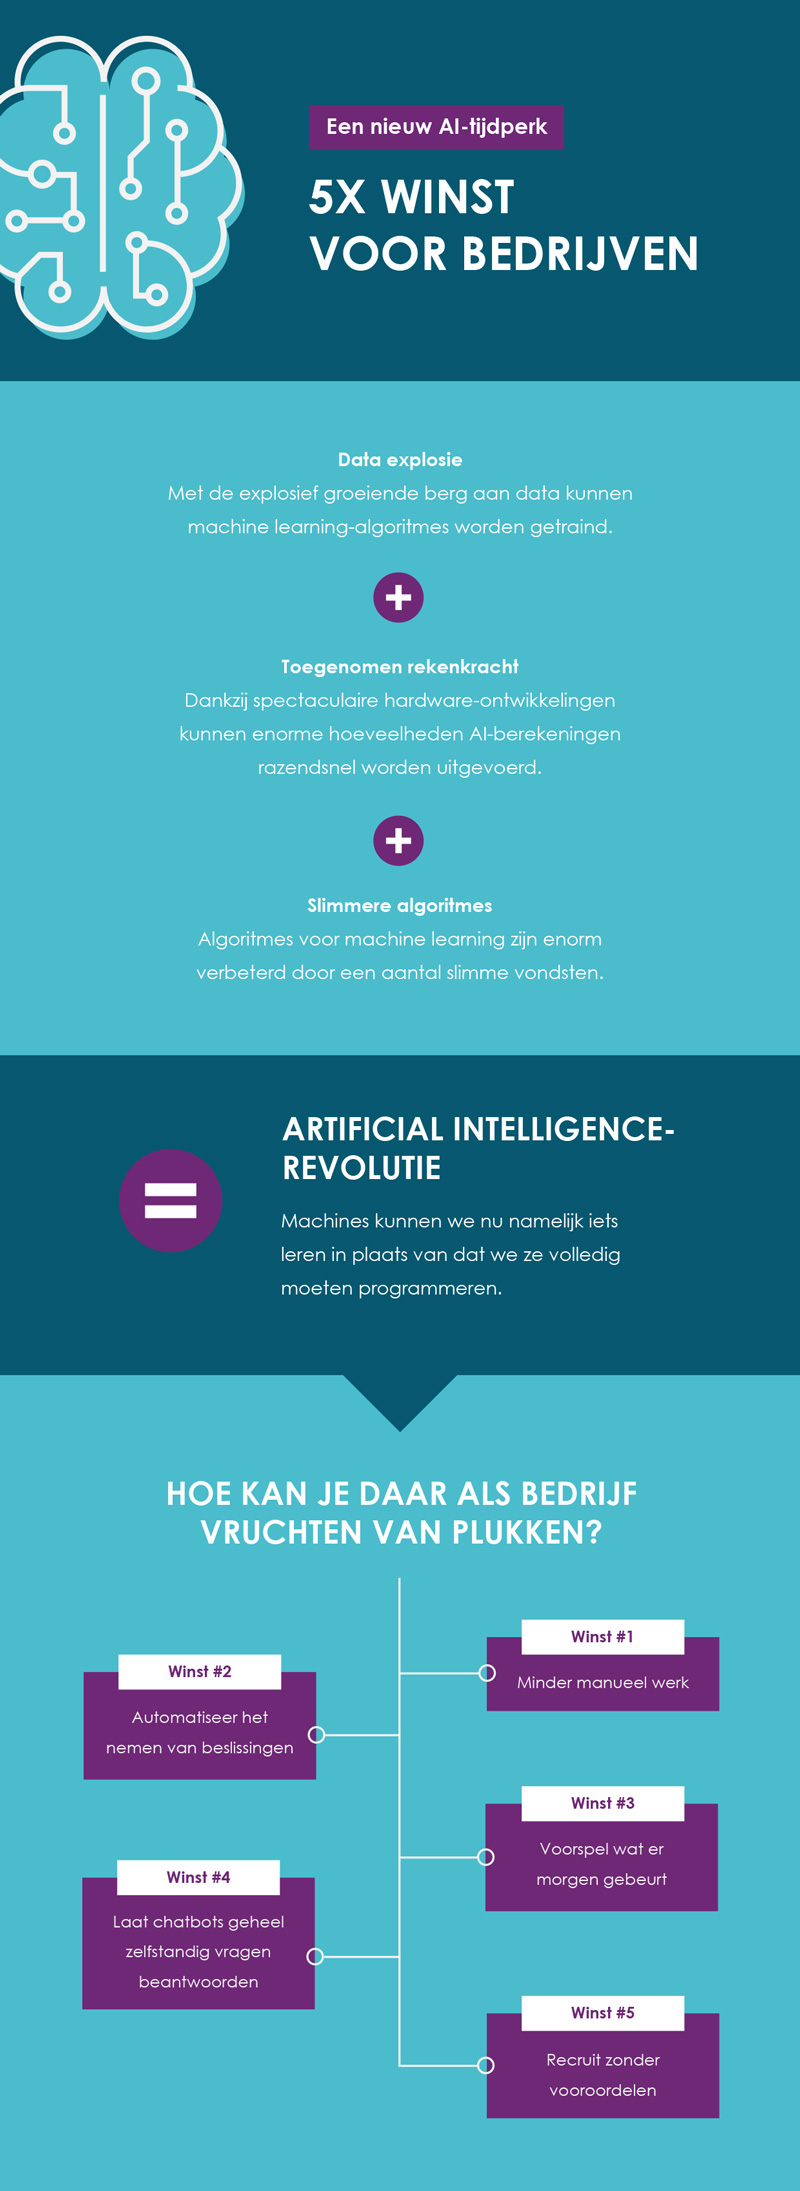 Infographic: A new AI era - 5 wins for businesses